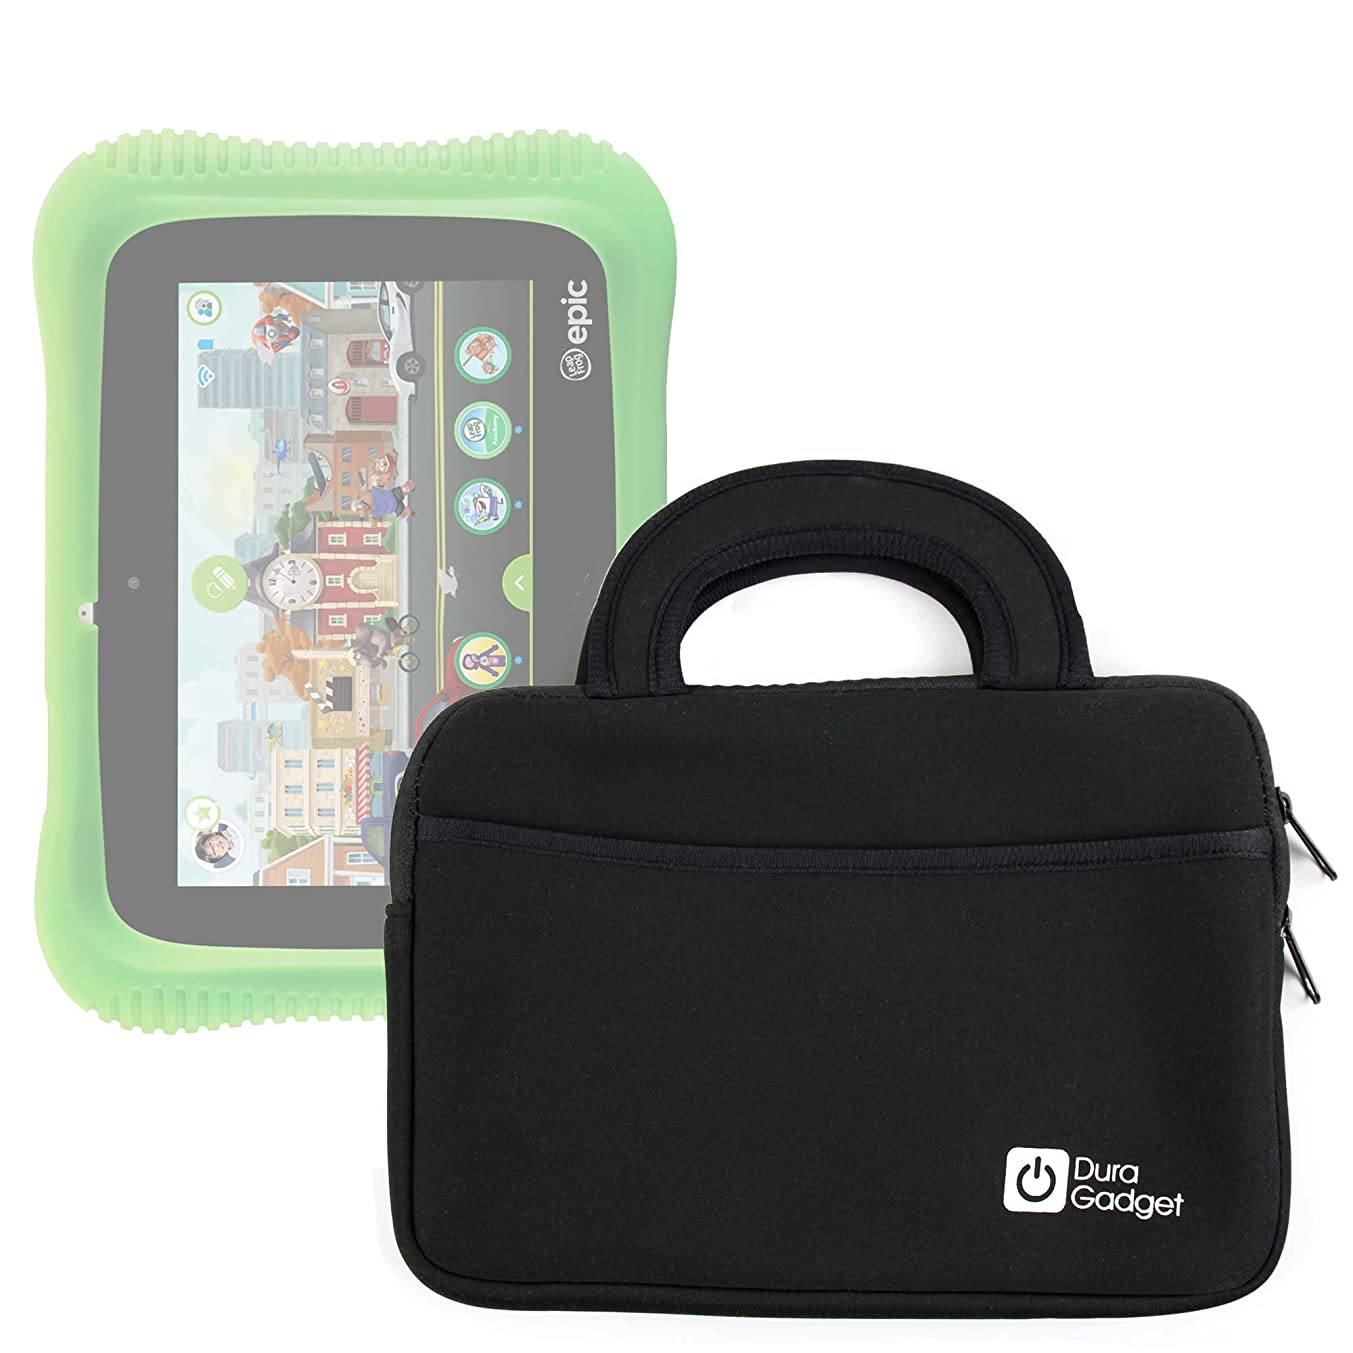 DURAGADGET Handy 'Briefcase Style' Water Resistant Neoprene Case/Cover with Additional Storage Pocket and Sturdy Carry Handle for The Leapfrog Epic Academy Edition Tablet